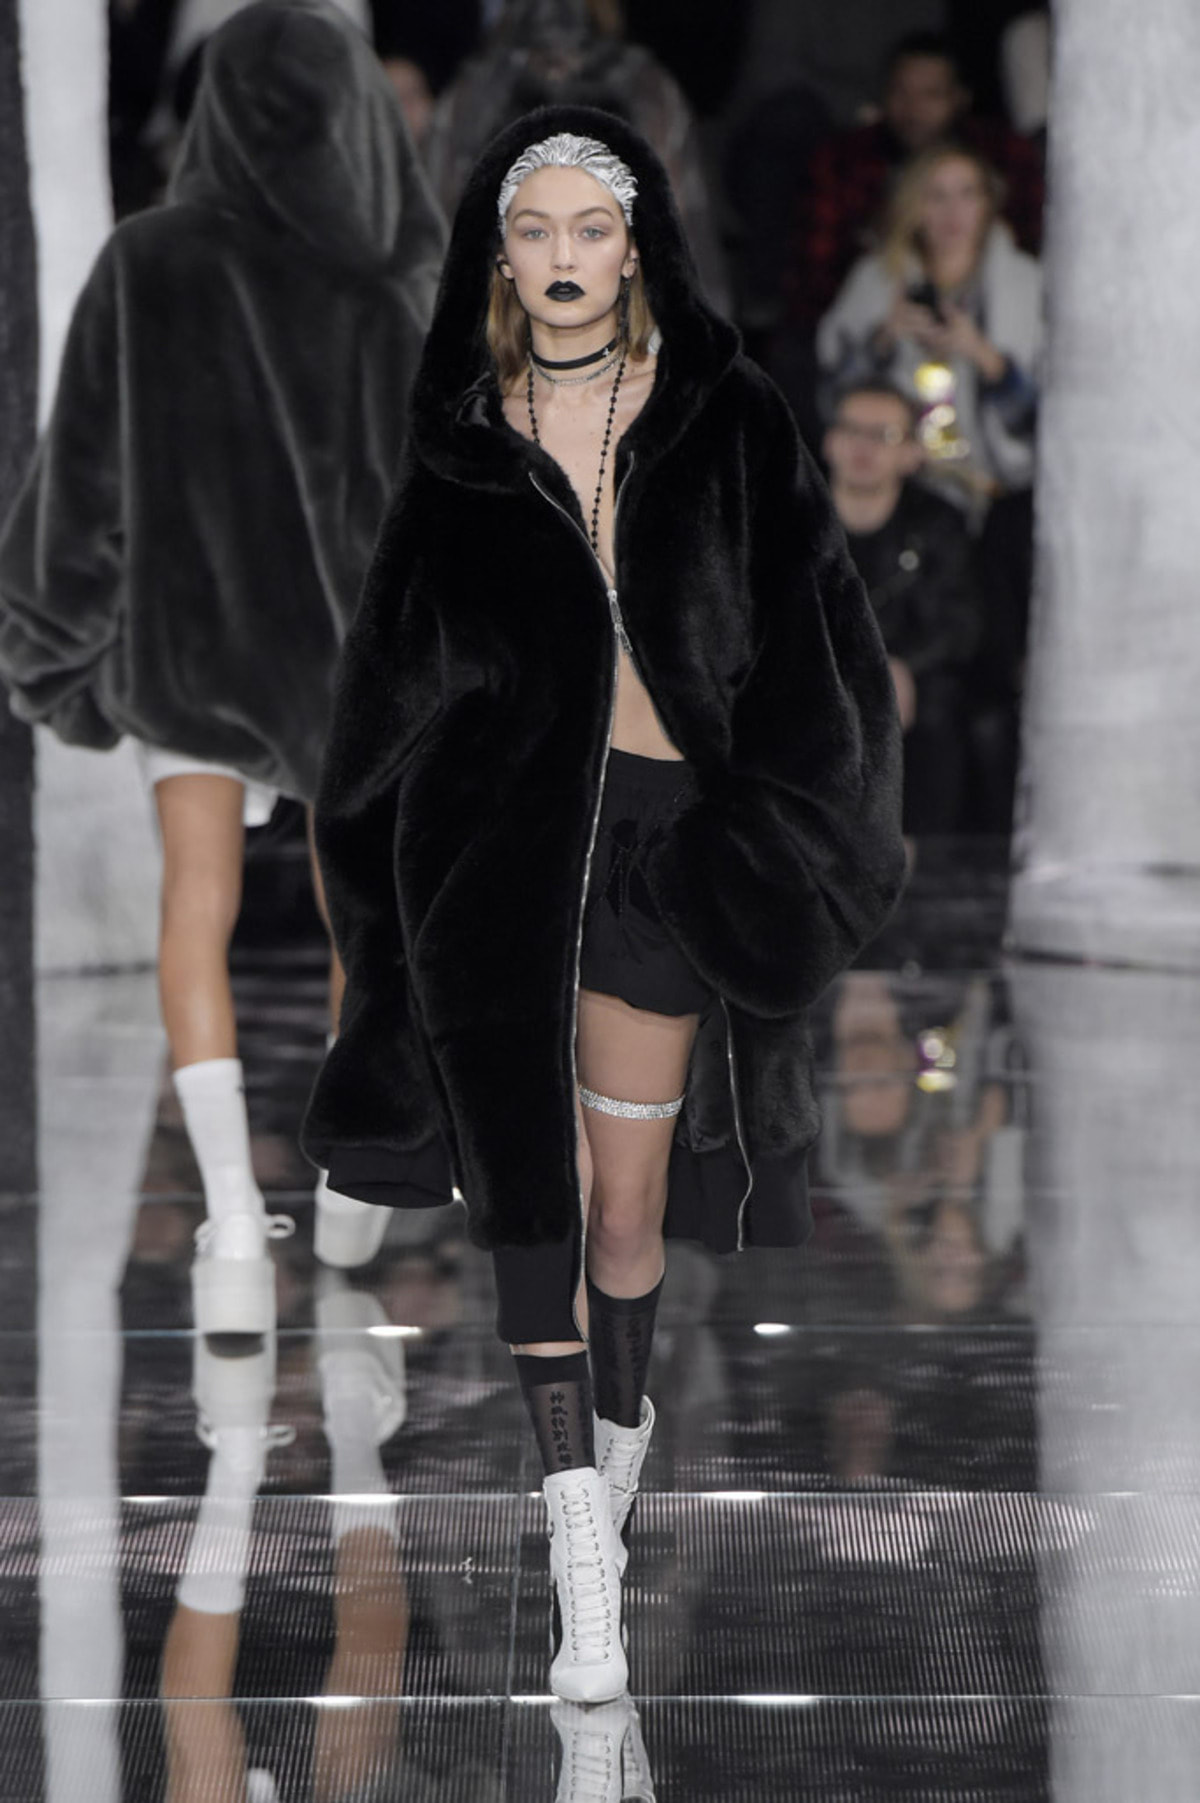 gigi-hadid-new-york-fashion-week-fall-2016-runway-07